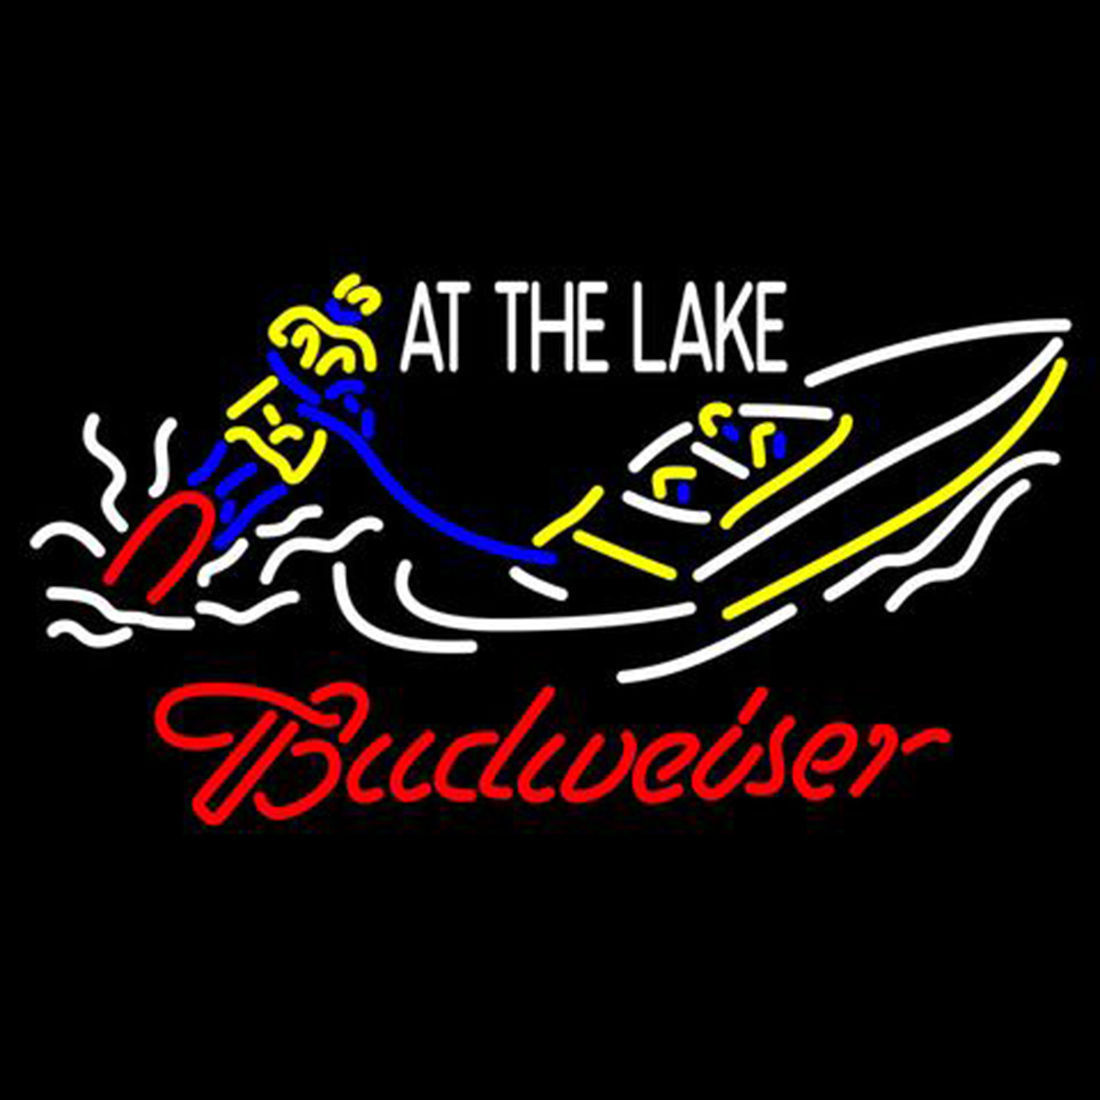 "New Budweiser At The Lake Speedboat Beer Bar Neon Sign 24""x20"""